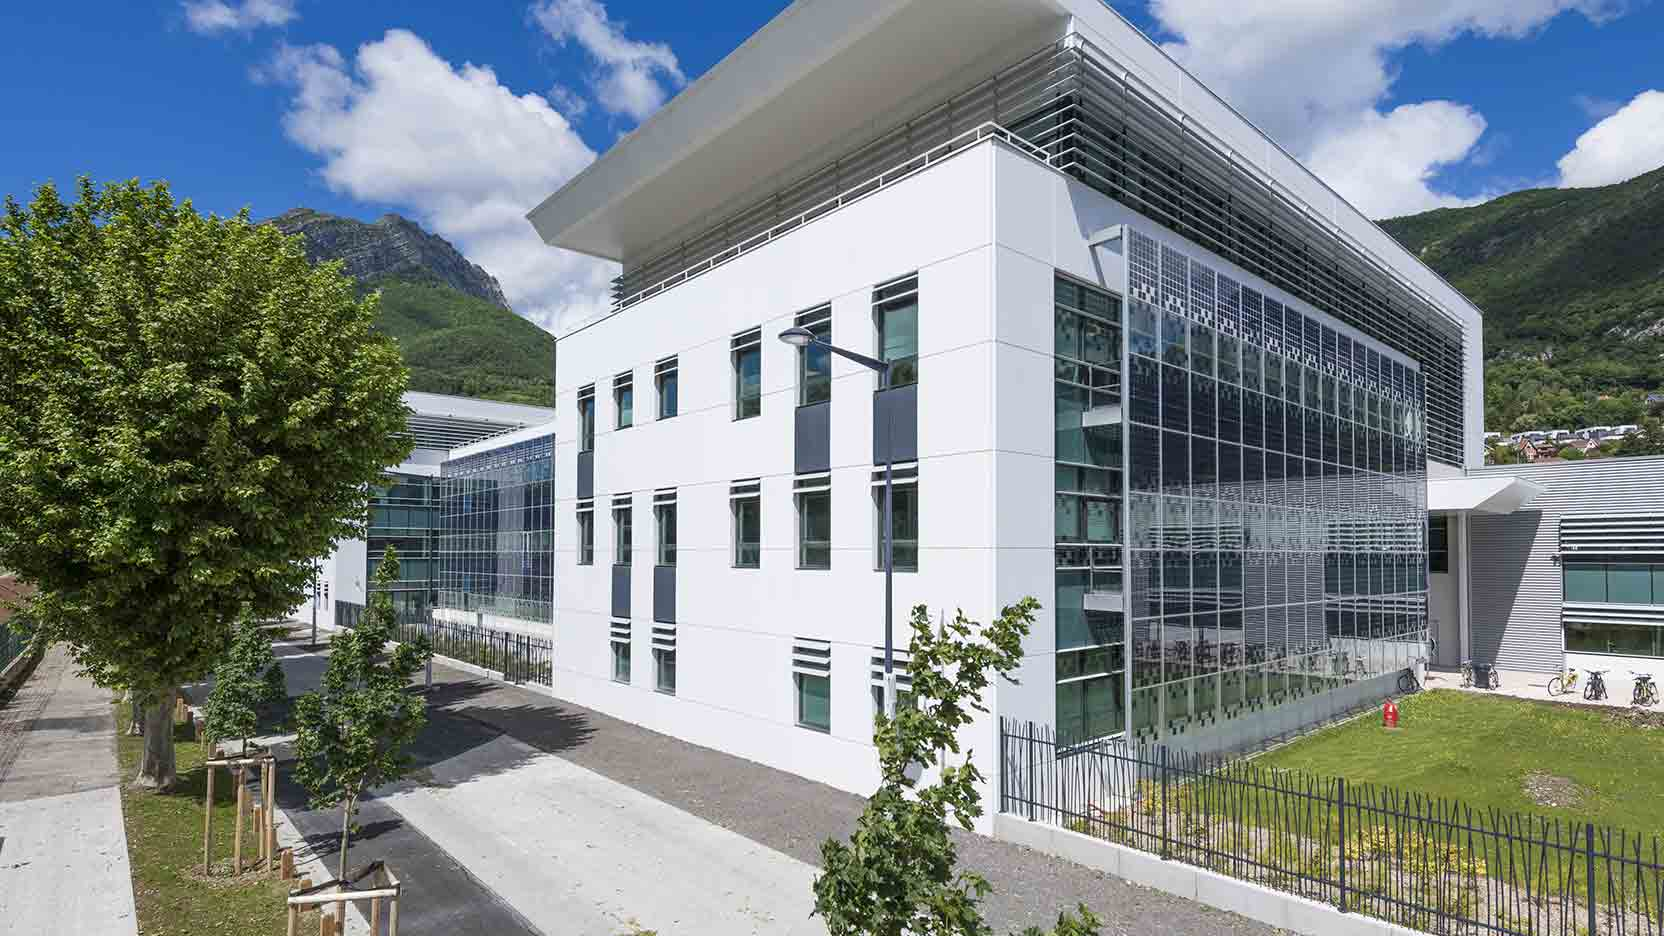 Green Building Solutions Awards 2018: The Schneider Electric Technopôle, built by GA, is the French winner of the «Smart Building» category